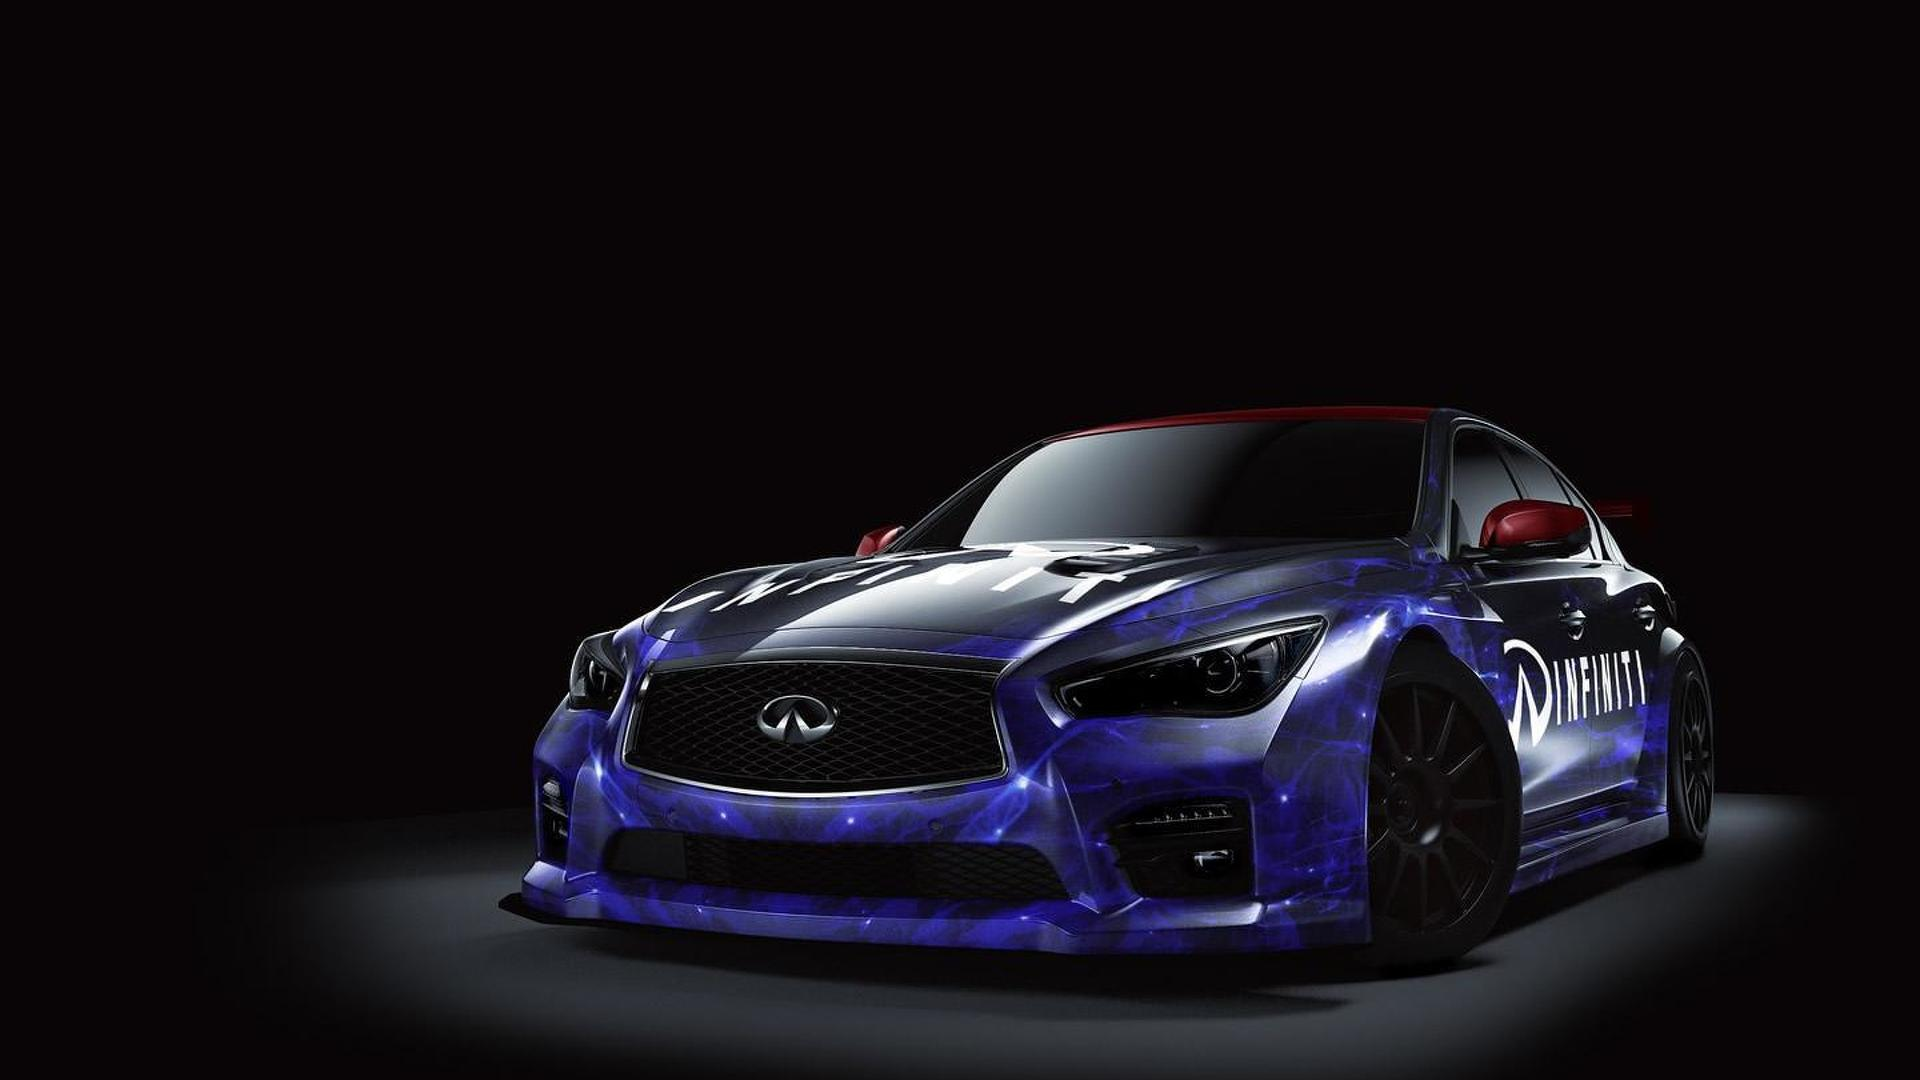 news awd limited infinity test infiniti edition road teaser alt carcostcanada review